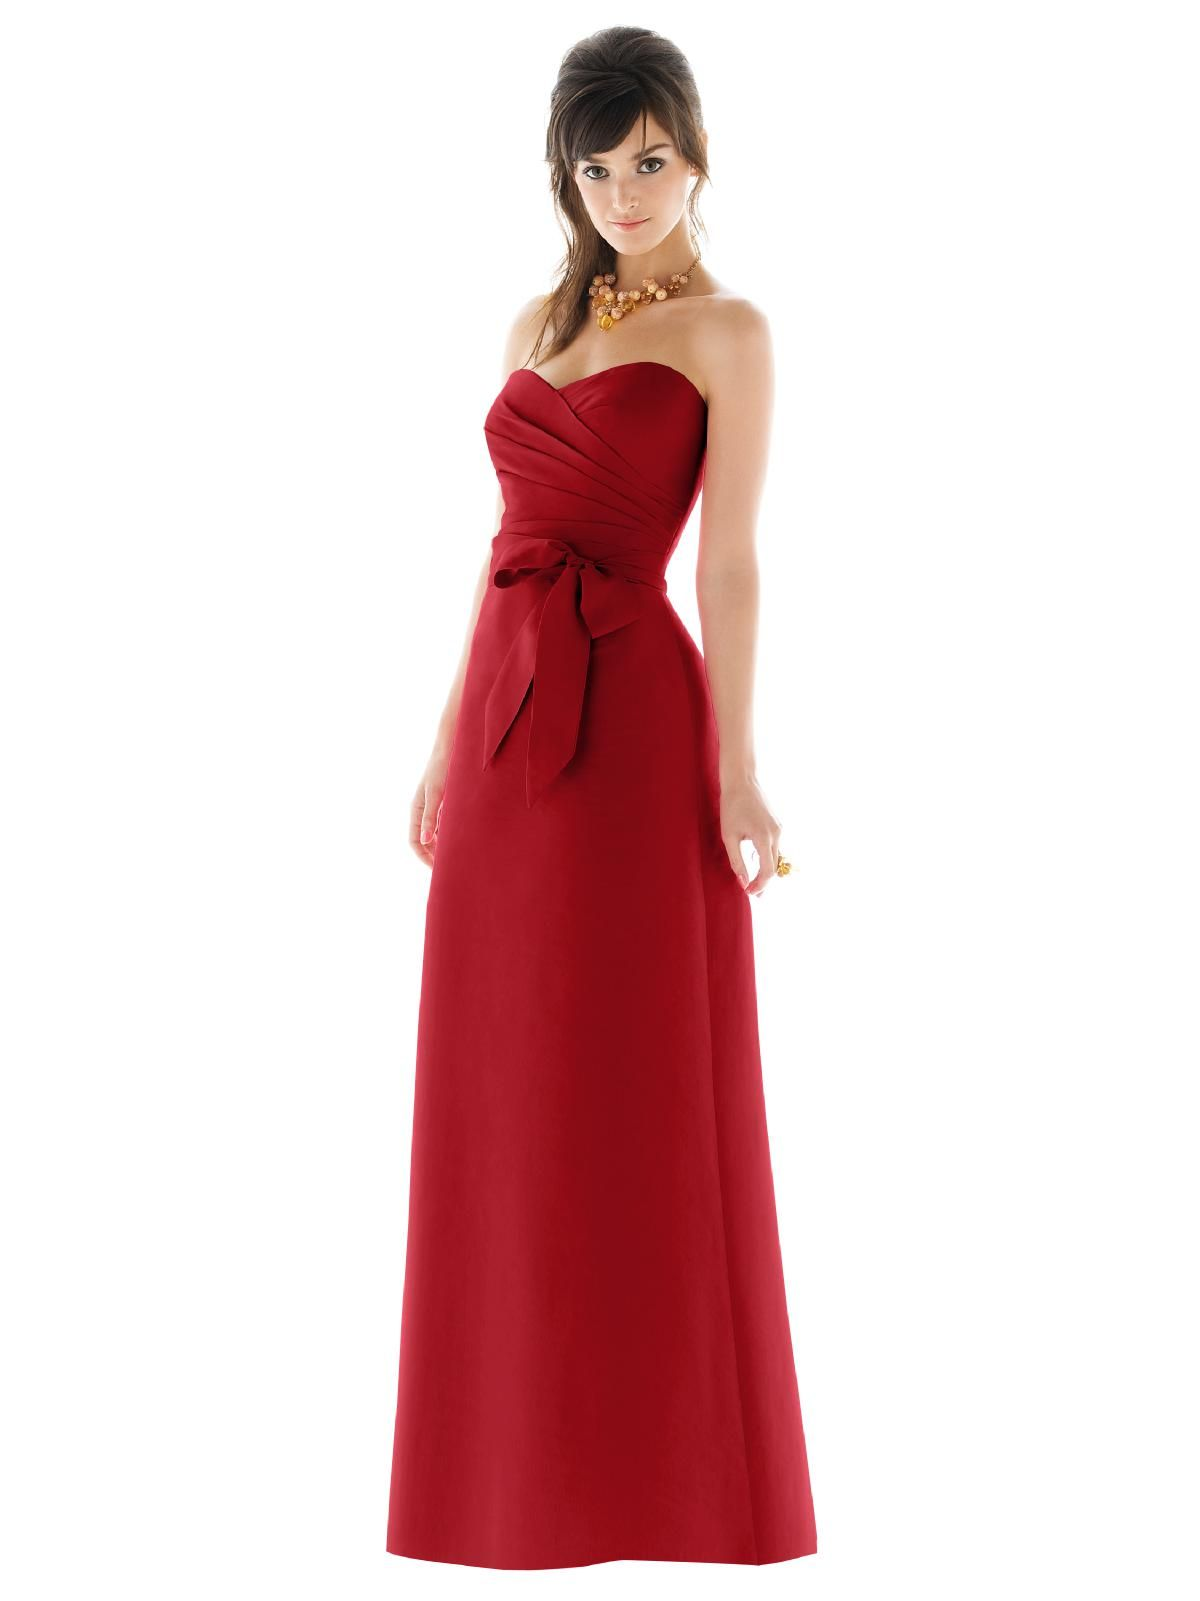 Alfred sung style d453 color garnet 13500 wedding the alfred sung bridesmaid collection offers fresh contemporary bridesmaid dresses while keeping your budget in mind ombrellifo Image collections